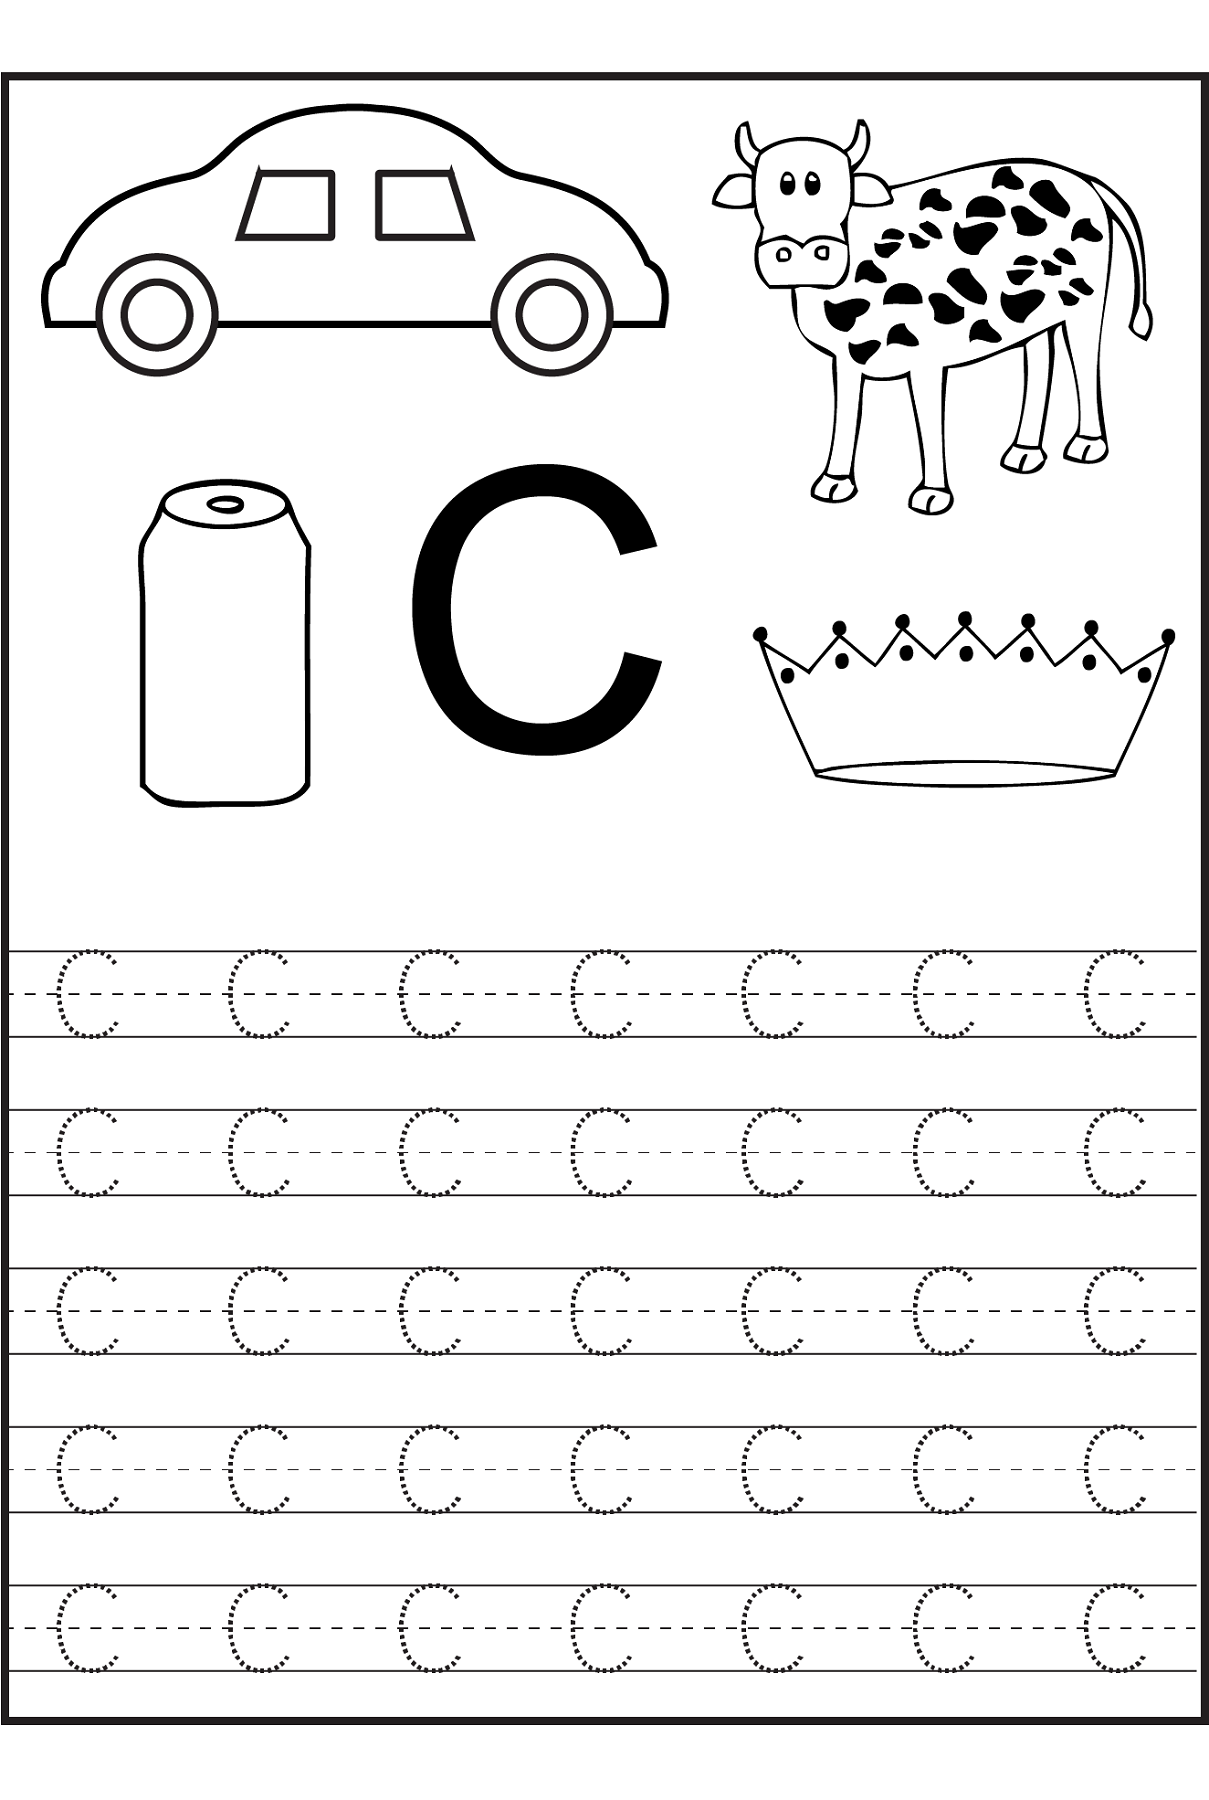 Trace The Letter C Worksheets | Preschool Worksheets throughout Letter C Tracing Sheet